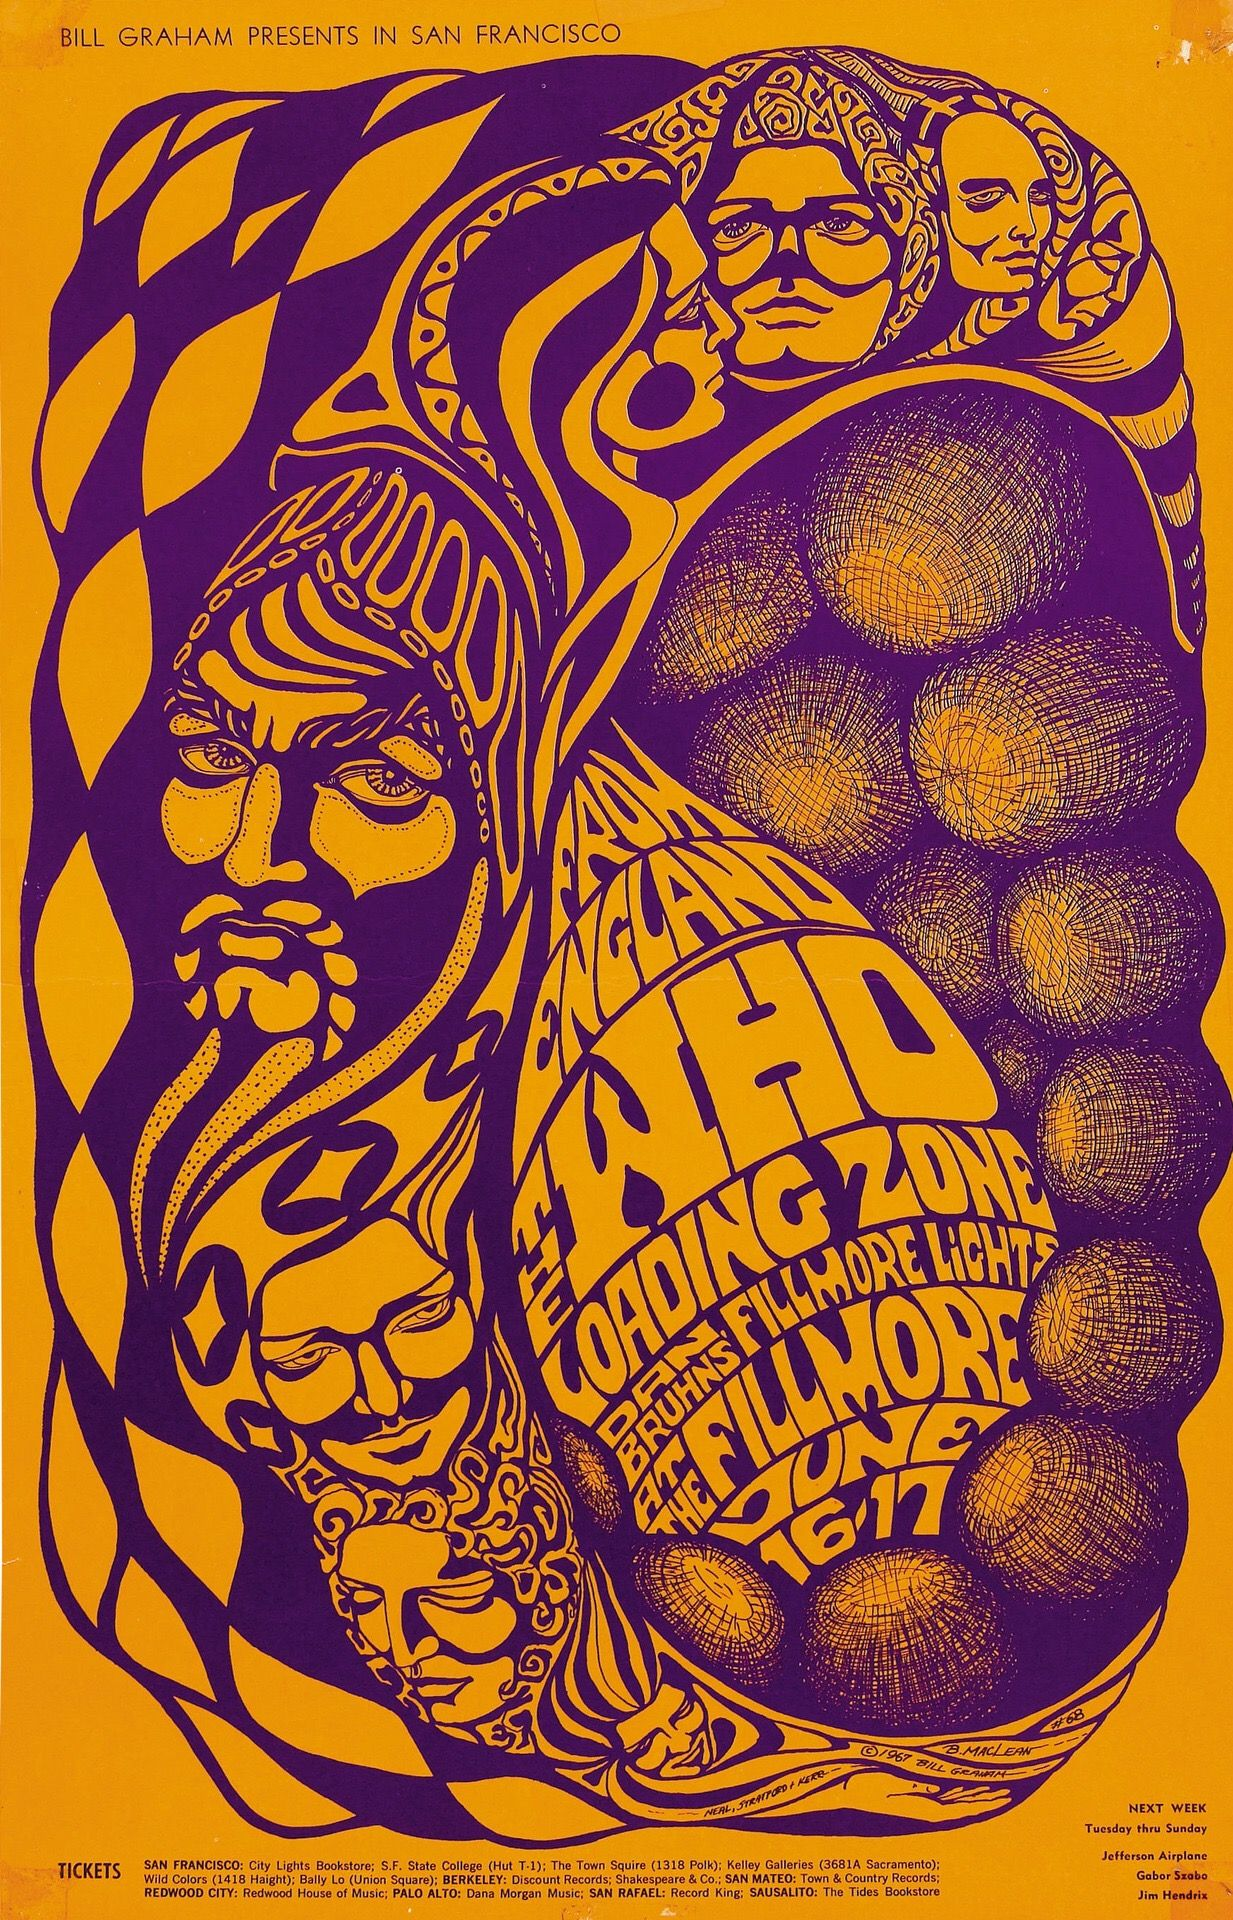 (BG 68) 1967 Who / Loading Zone at the Fillmore. Art by Bonnie MacLean.